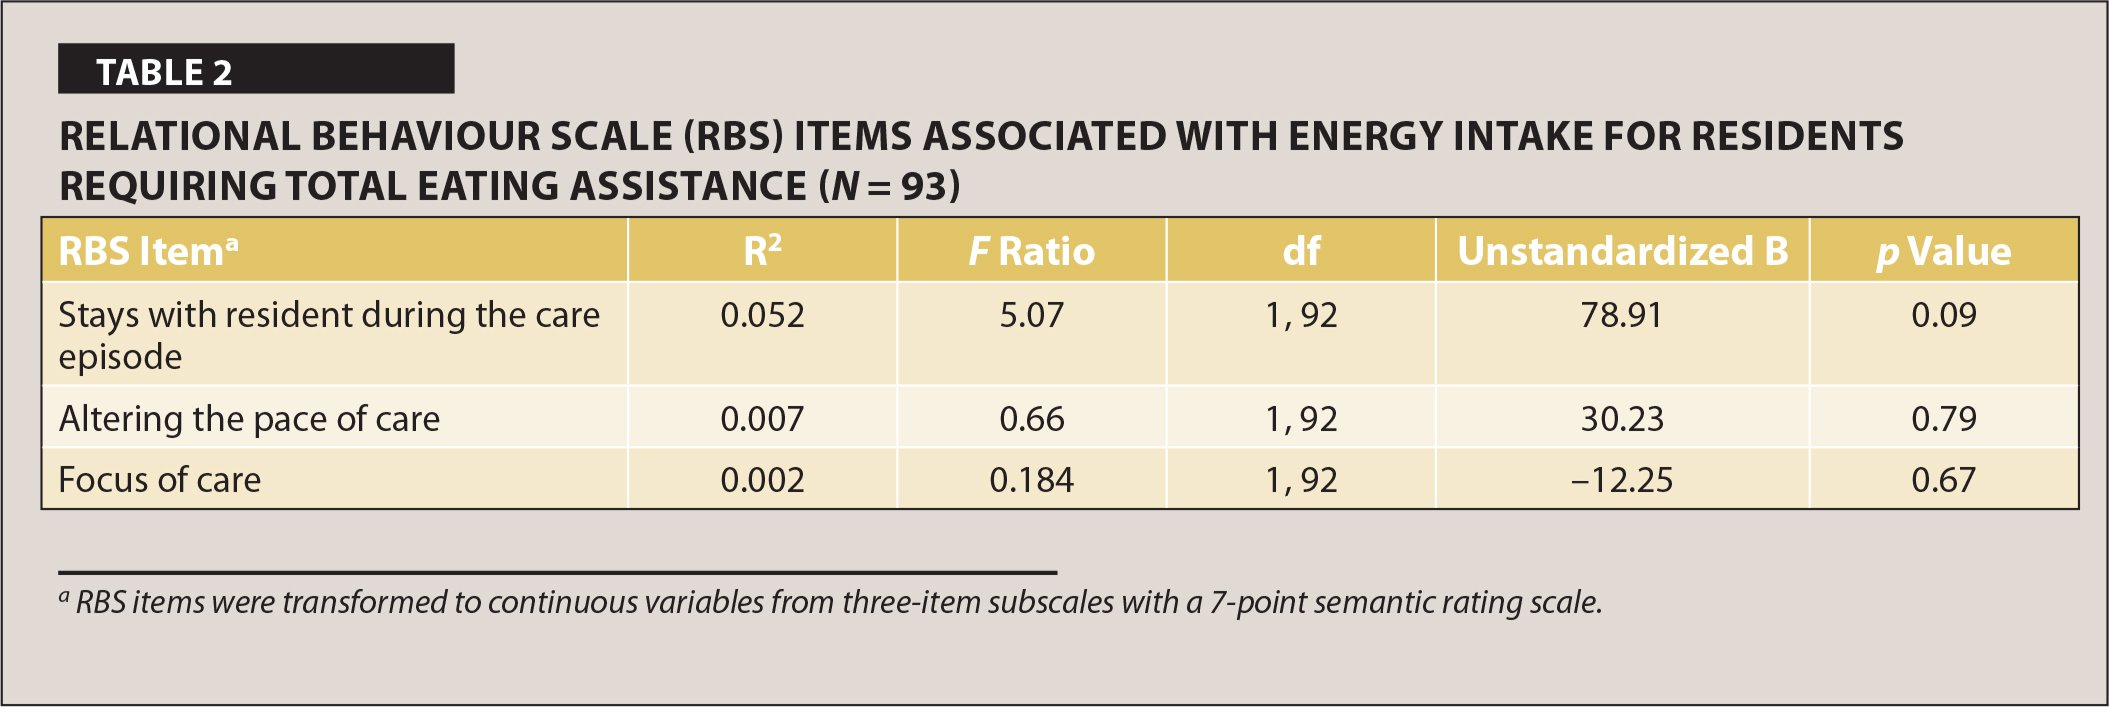 Relational Behaviour Scale (RBS) Items Associated with Energy Intake for Residents Requiring Total Eating Assistance (N = 93)